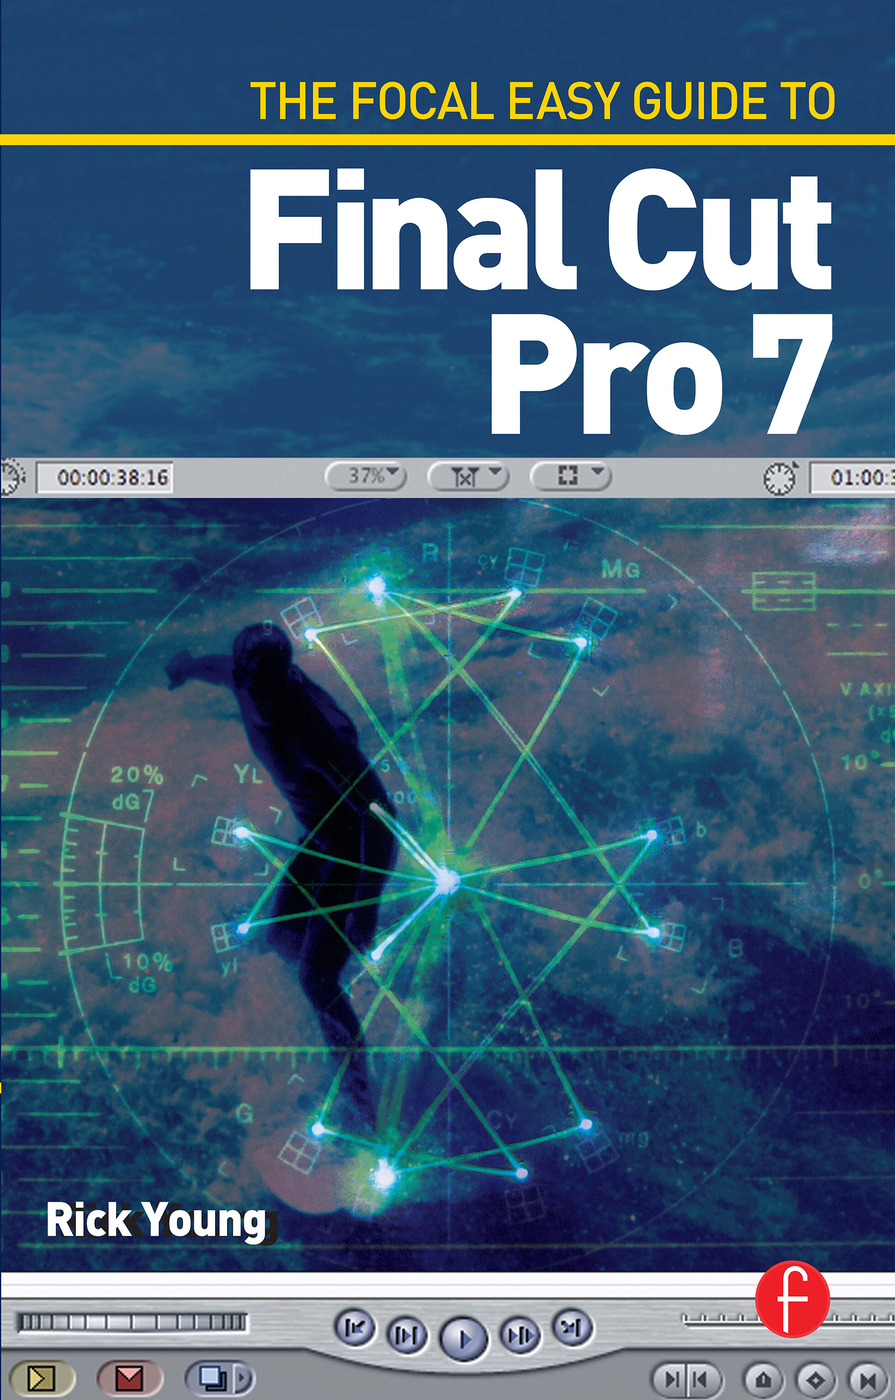 The Focal Easy Guide to Final Cut Pro 7 book cover